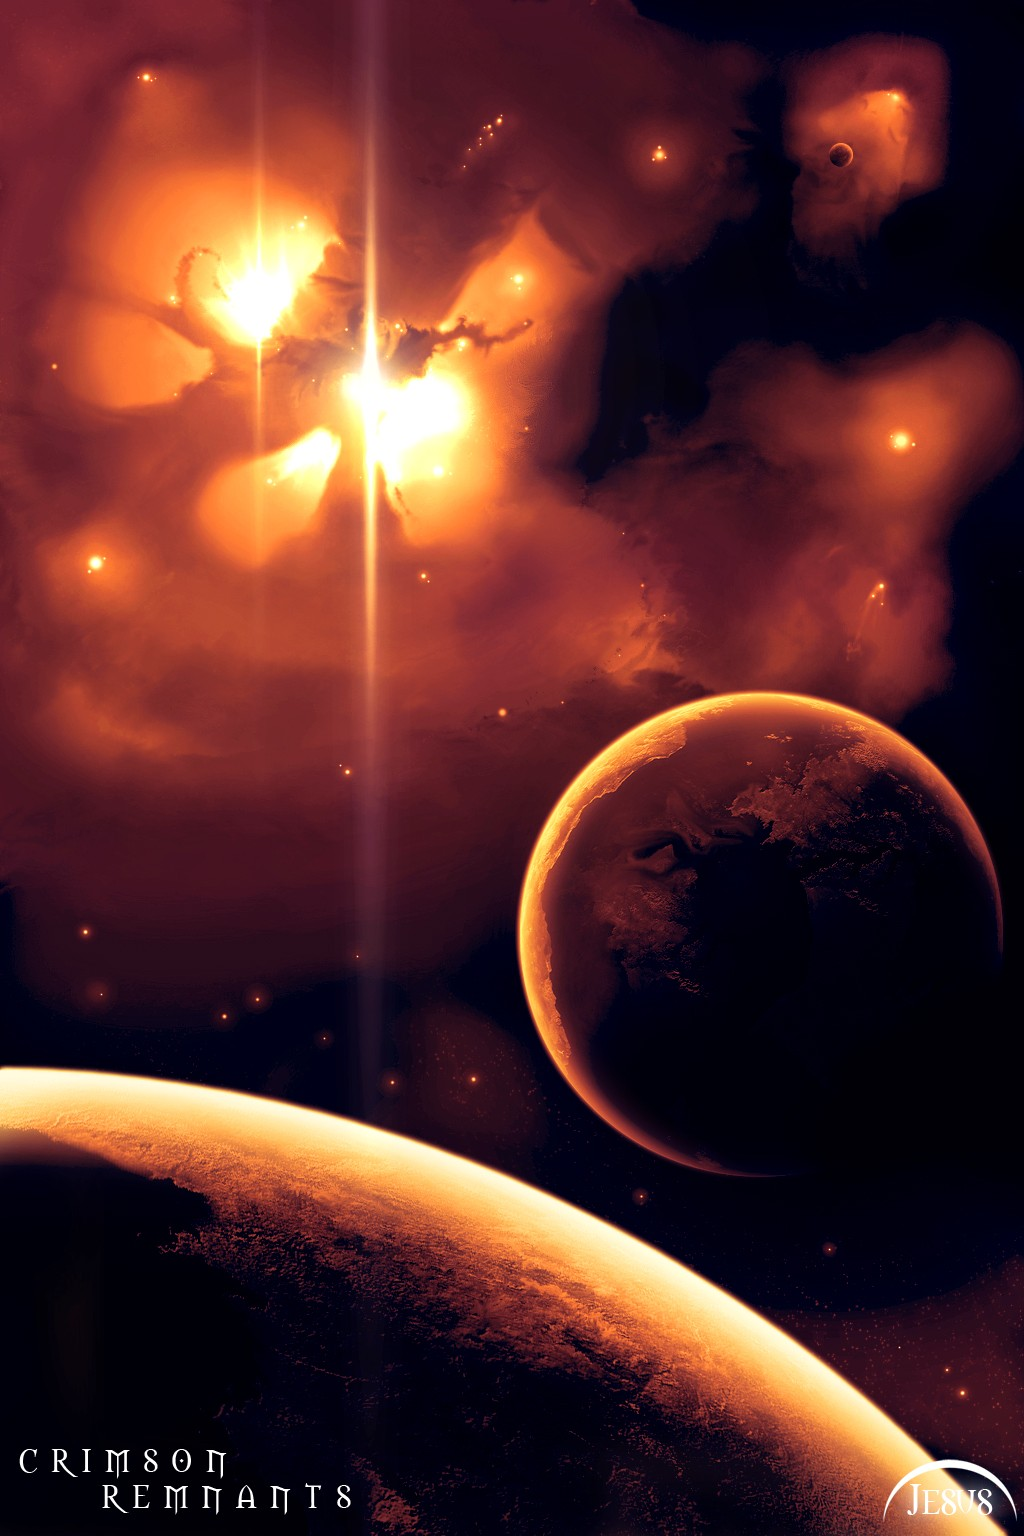 General 1024x1536 JoeyJazz spacescapes space planet digital art